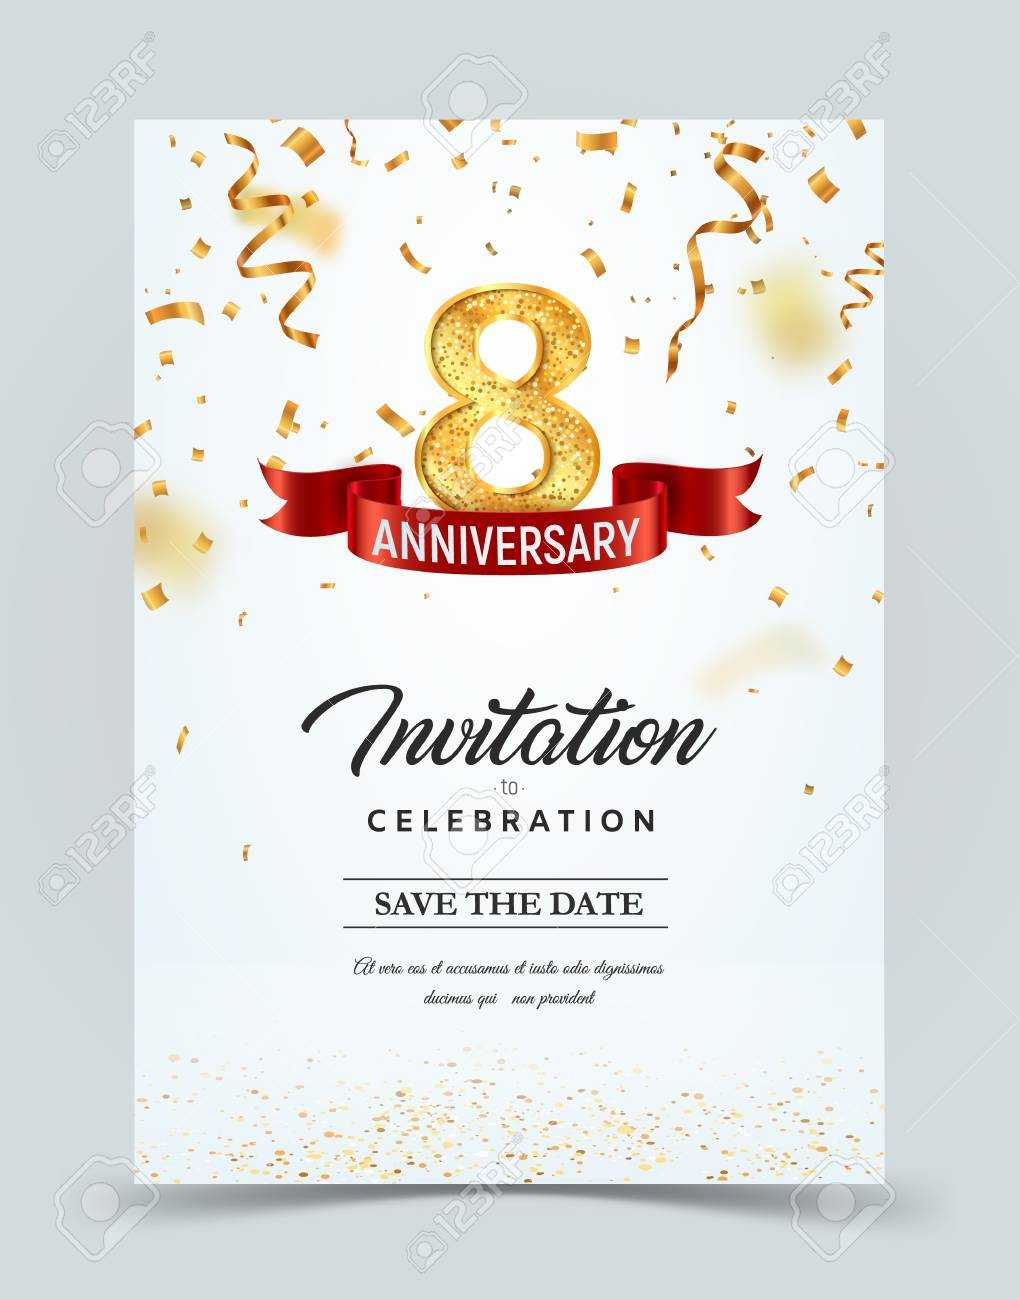 Invitation Card Template Of 8 Years Anniversary With Abstract.. Inside Template For Anniversary Card